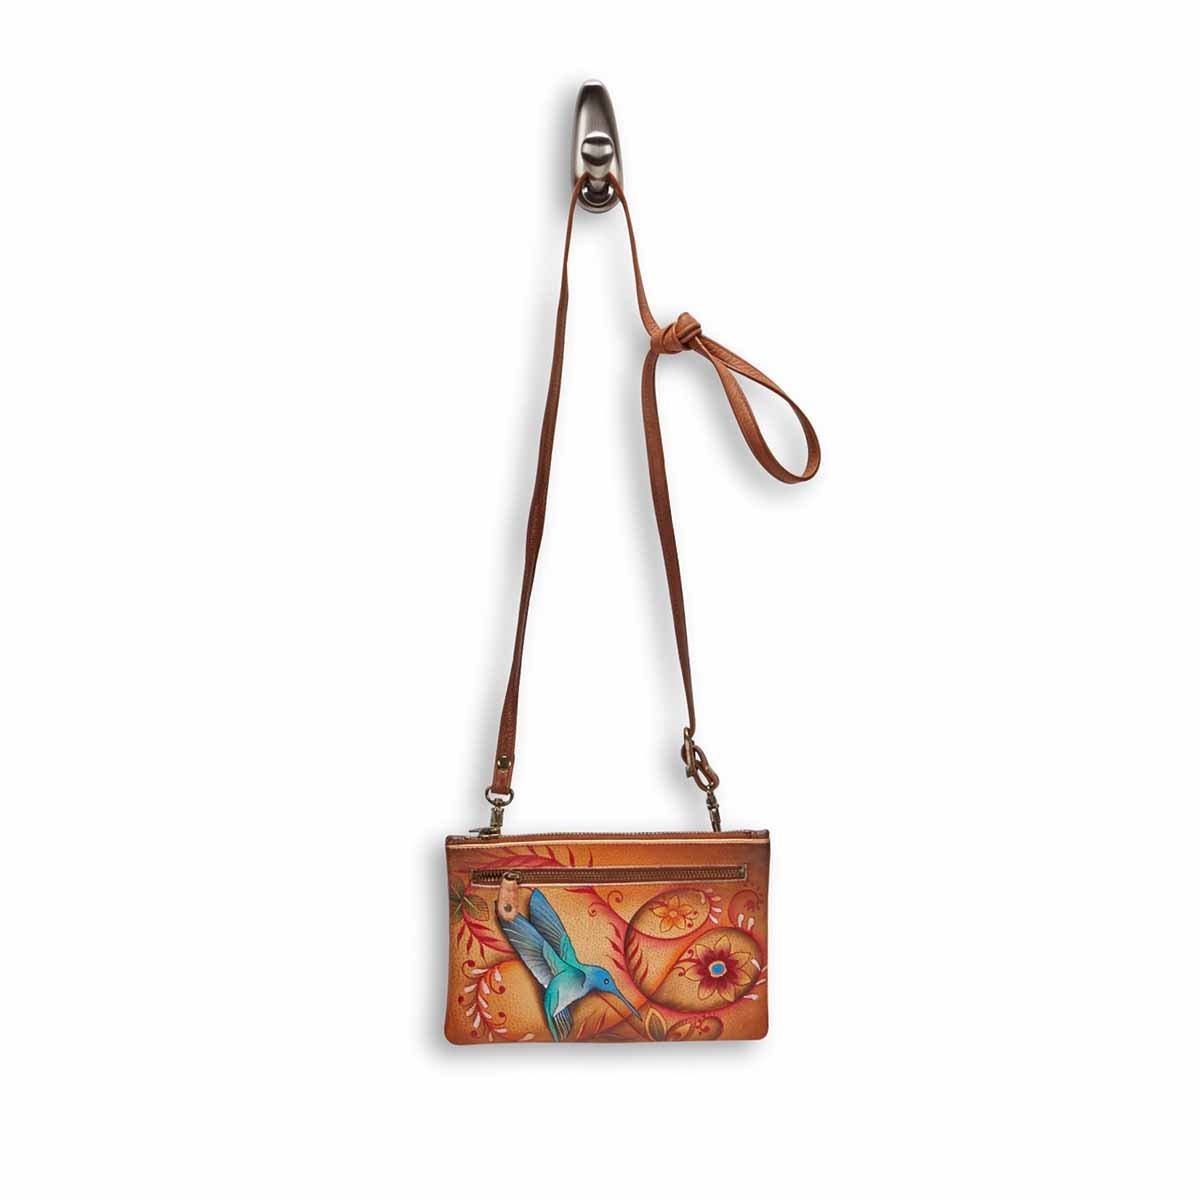 Painted lthr Flying Jewels Tan clutch